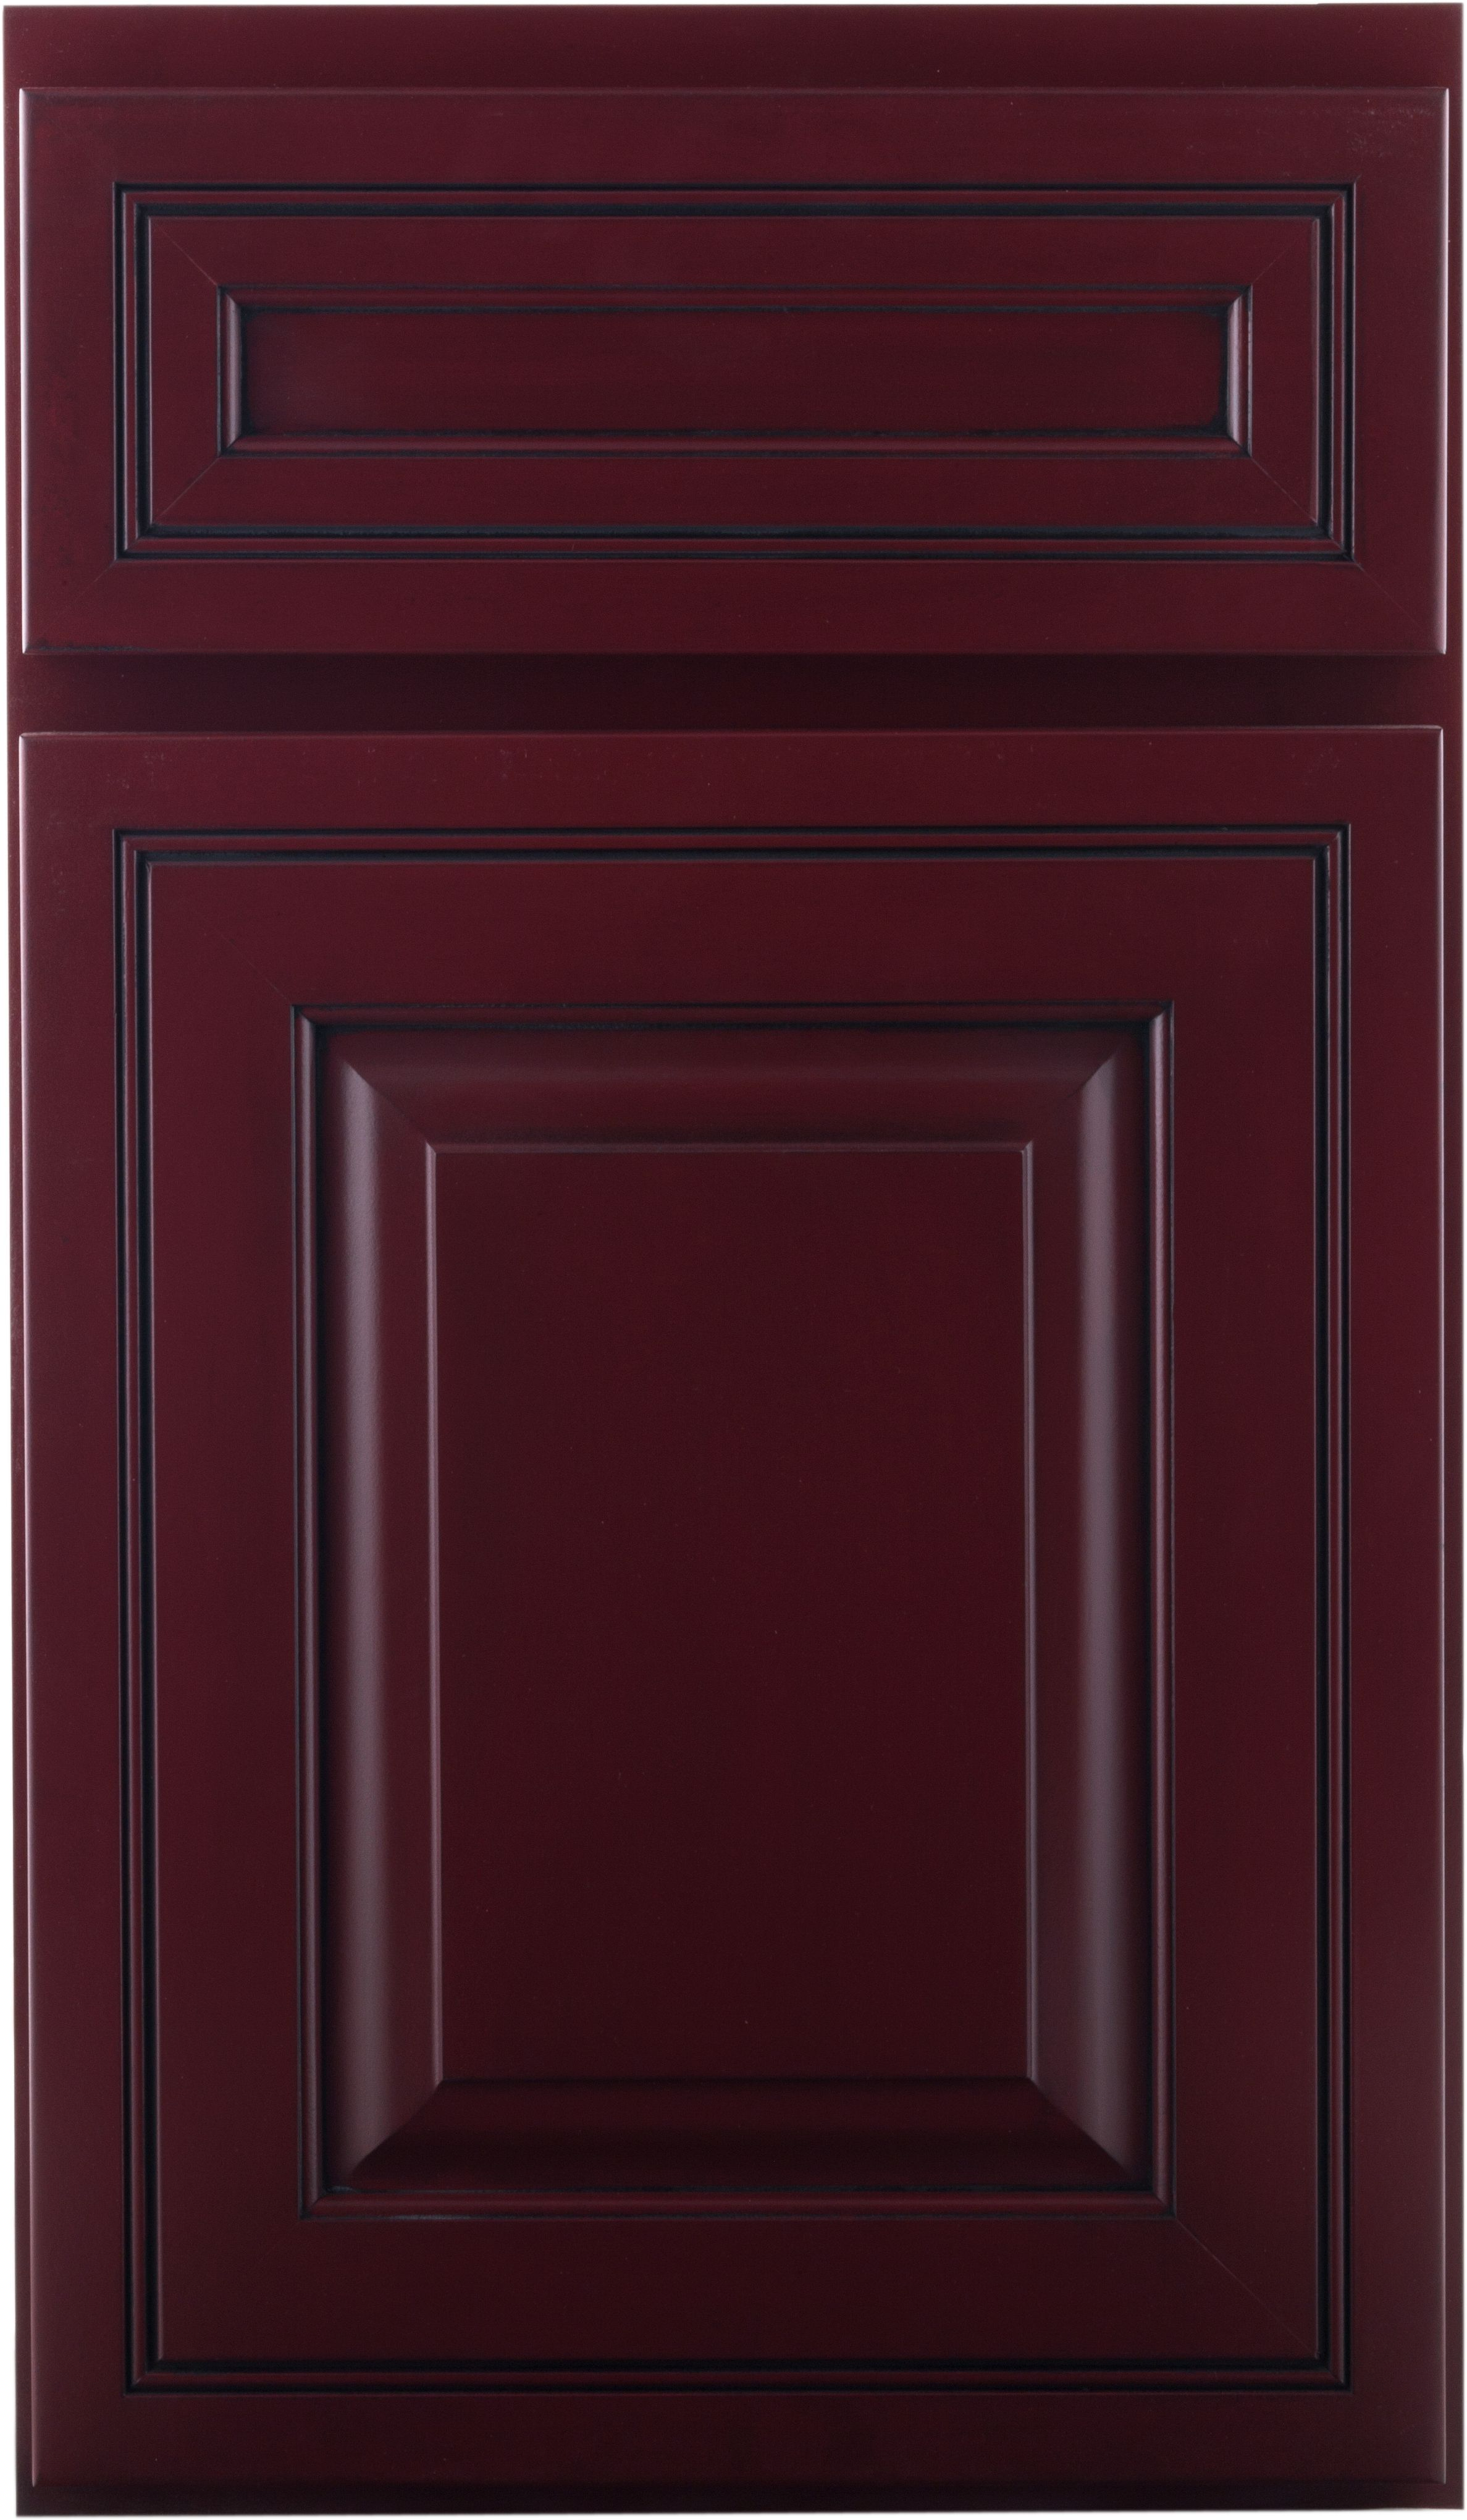 Crown Cabinets Sedona Maple Brick Red Black Glaze | Crown Cabinets ...